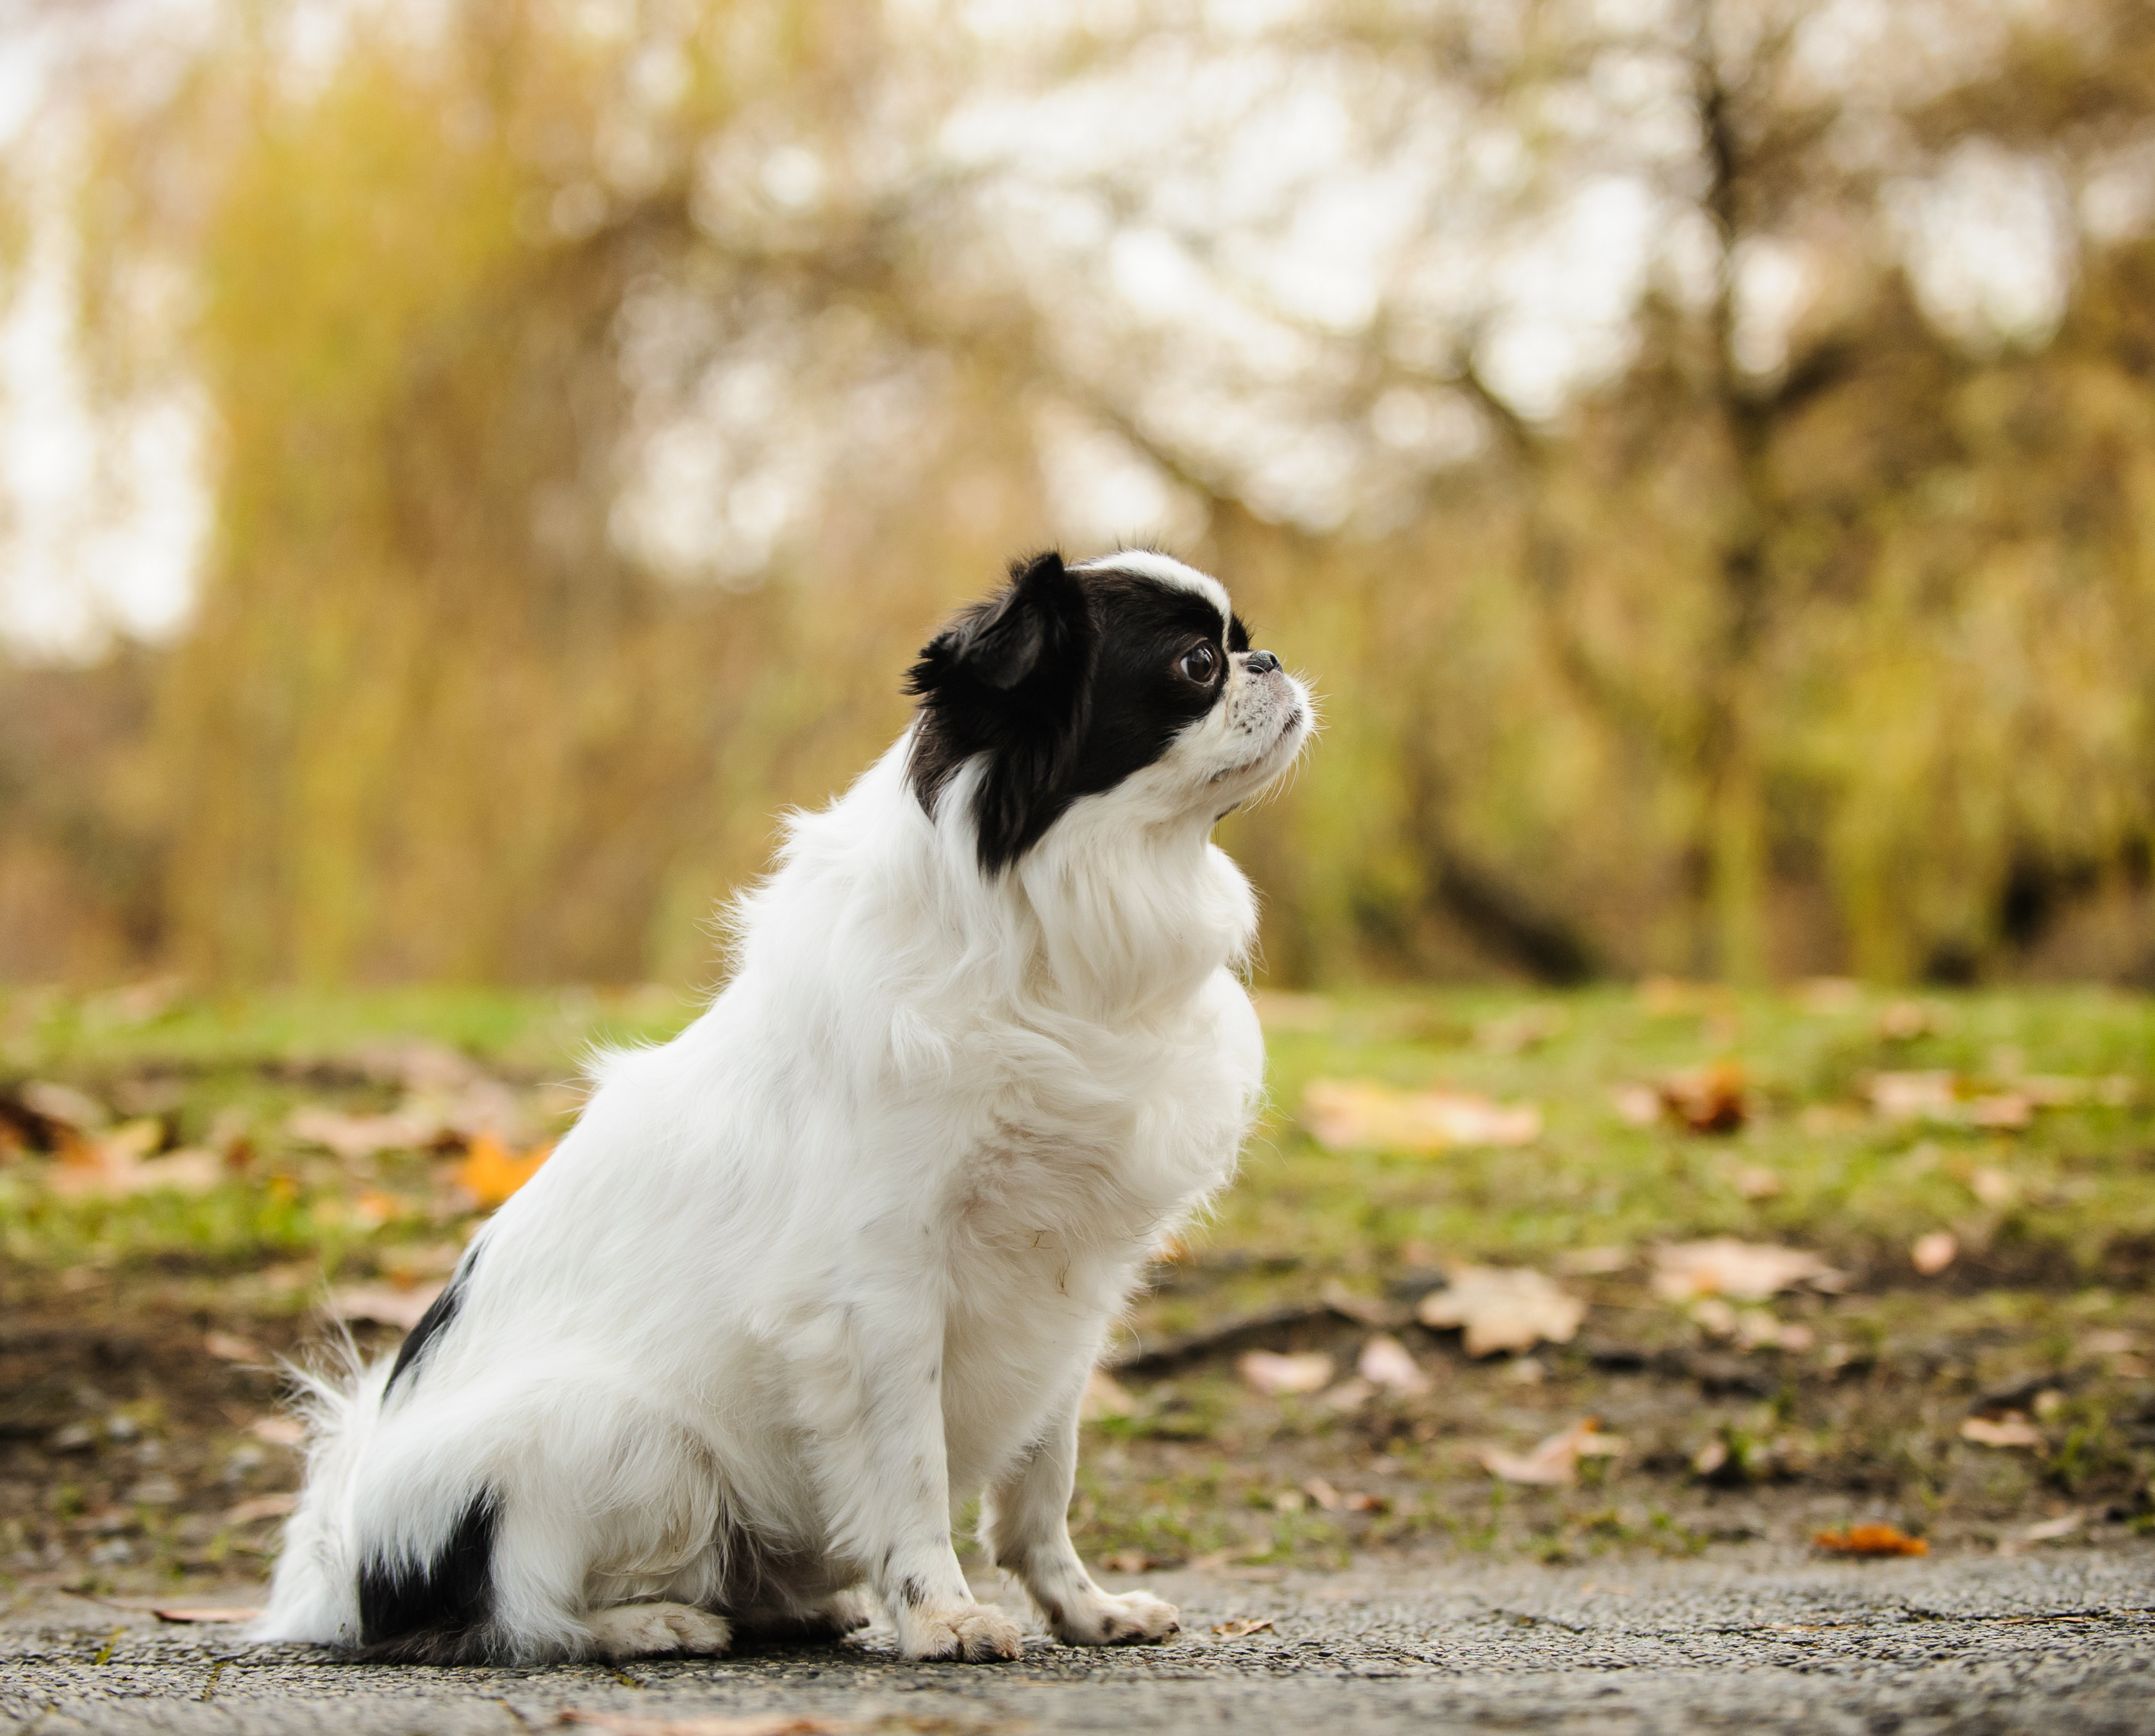 Black and white Japanese chin dog sitting on sidewalk in a grassy park during the fall